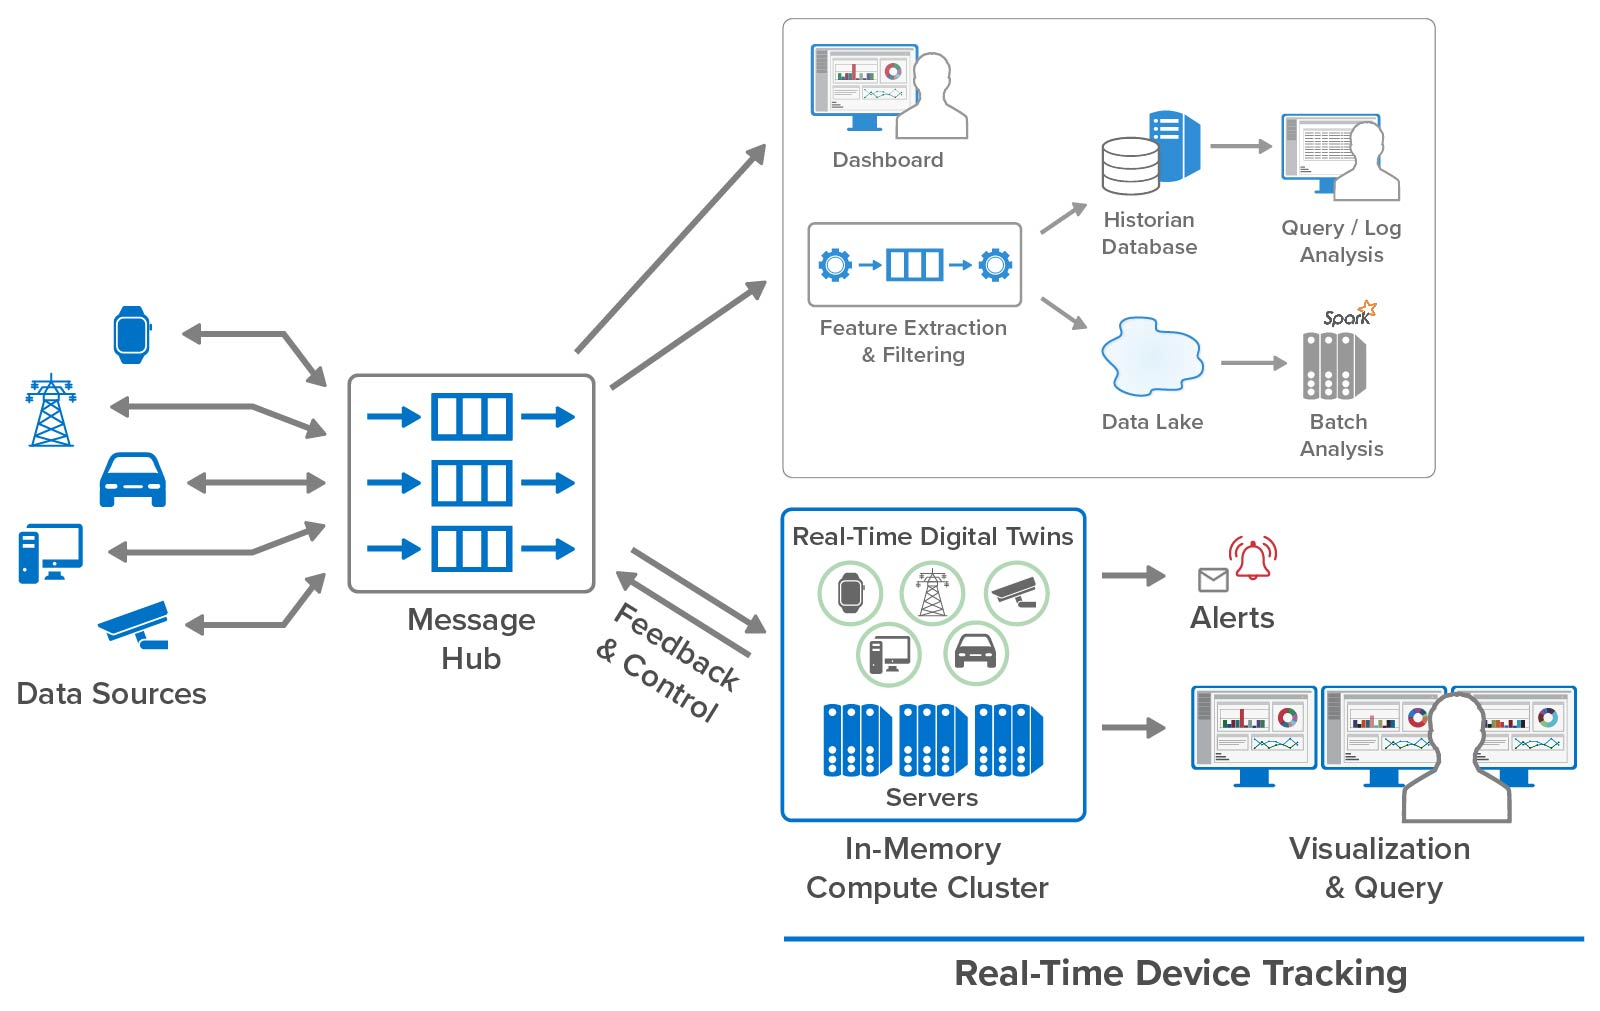 Real-time device tracking uses digital twins running in an in-memory compute cluster.